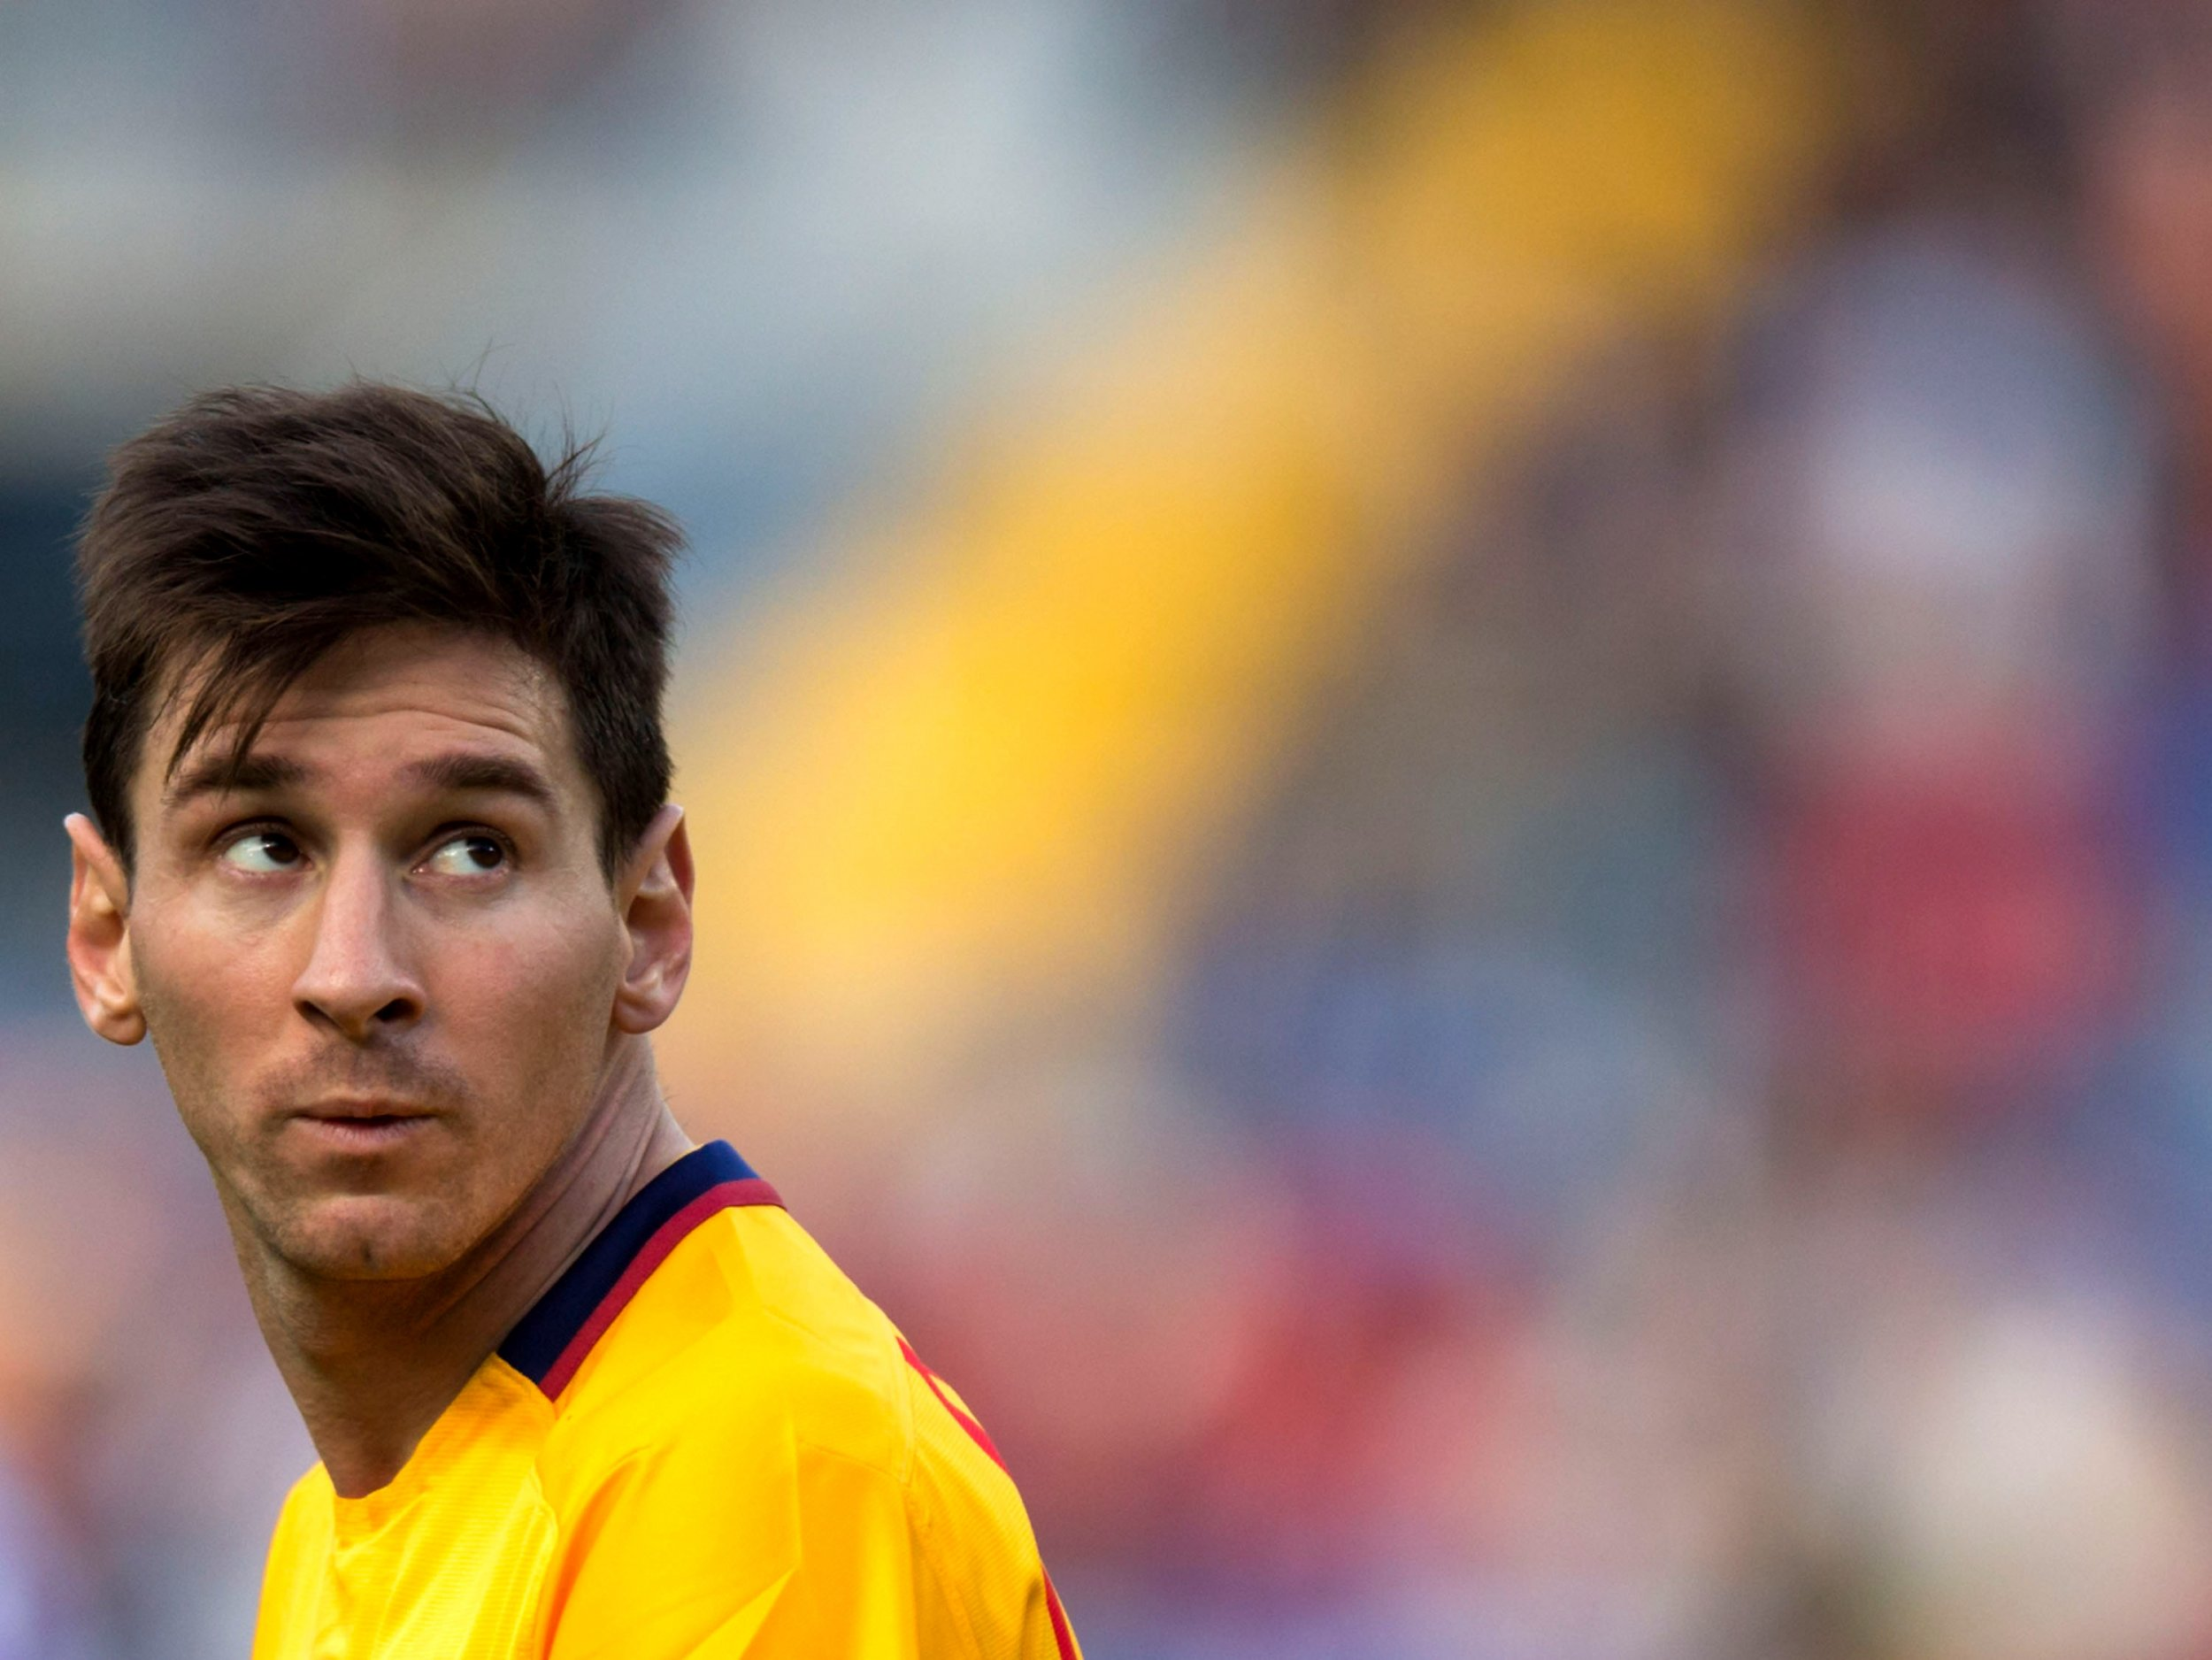 lionel messi no rio 2016 olympic games for barcelona star